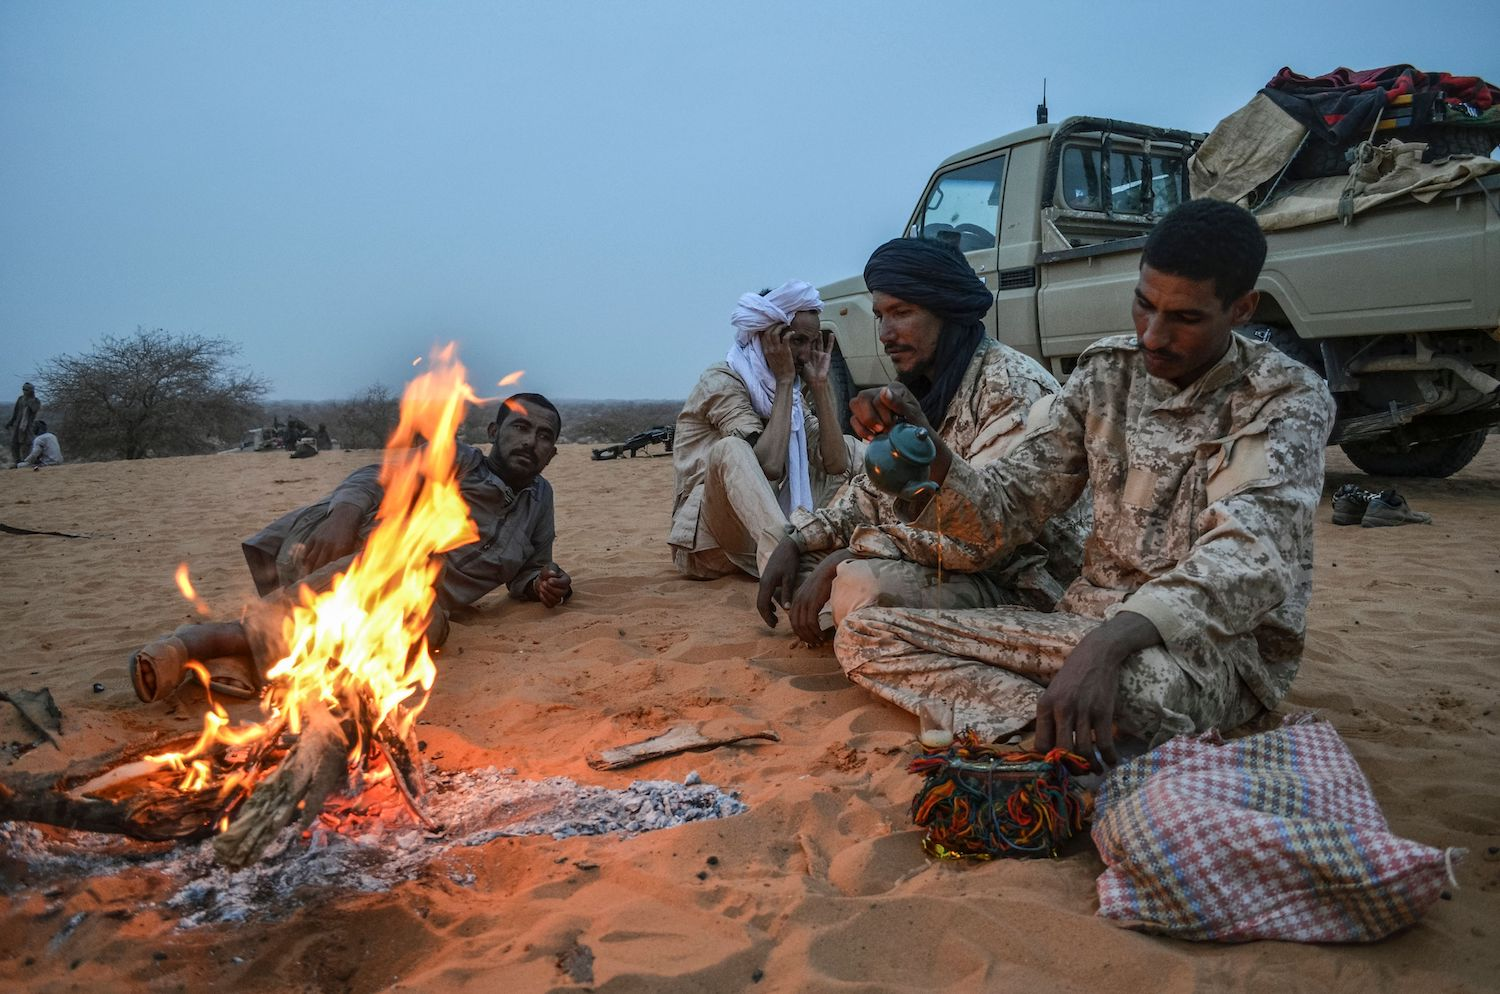 Militants of The Movement for the Salvation of Azawad sit as they brew tea at a waypoint while patrolling along the Mali-Niger border in the Menaka region of Mali during an anti-jihadist patrol on February 4, 2018. / AFP PHOTO / Souleymane AG ANARA        (Photo credit should read SOULEYMANE AG ANARA/AFP/Getty Images)